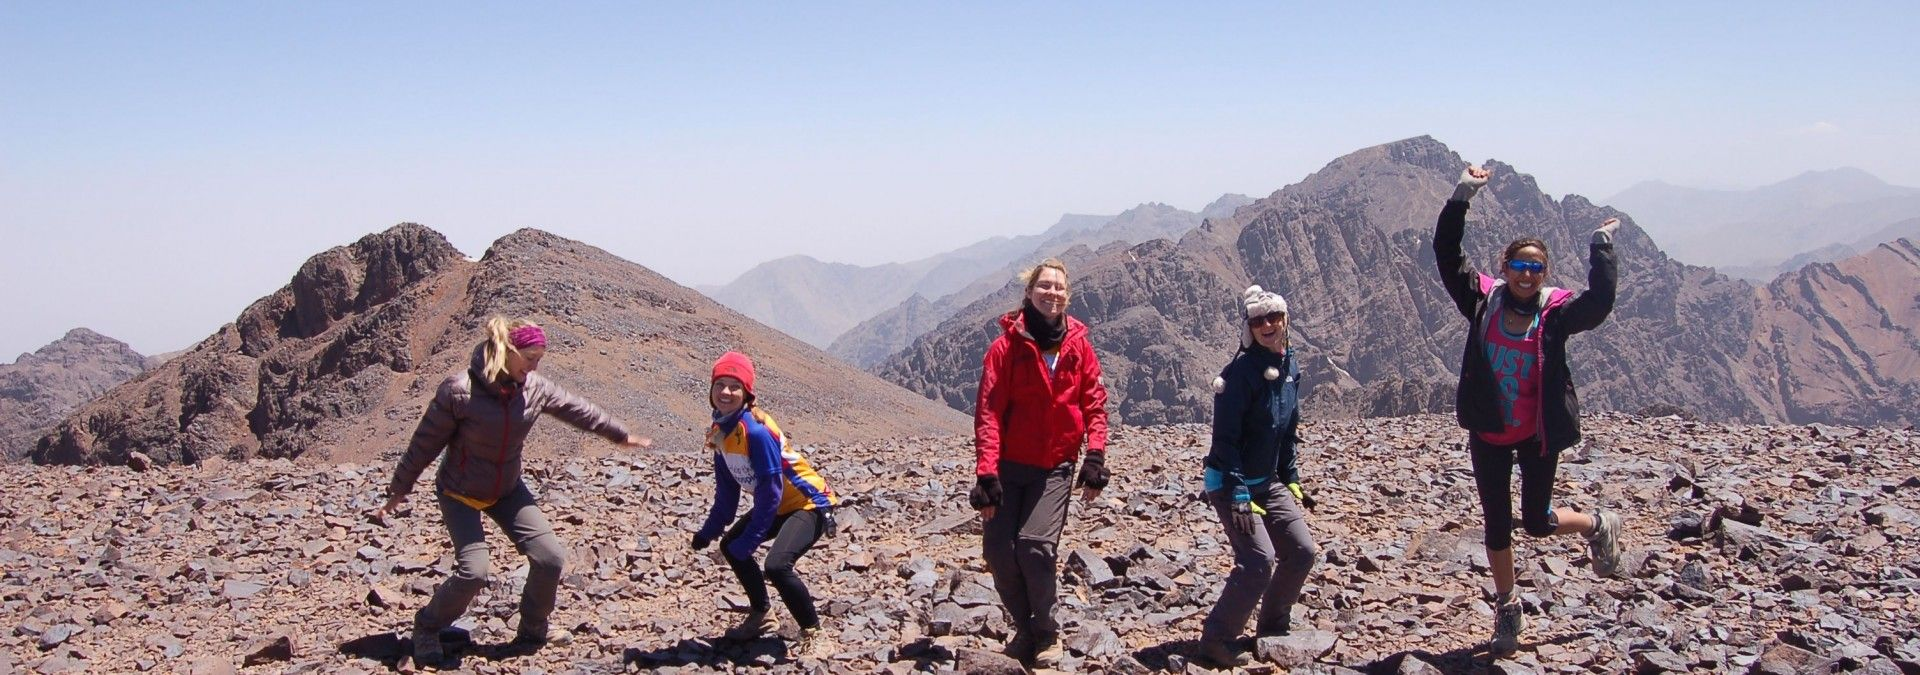 Jumping for joy on Toubkal